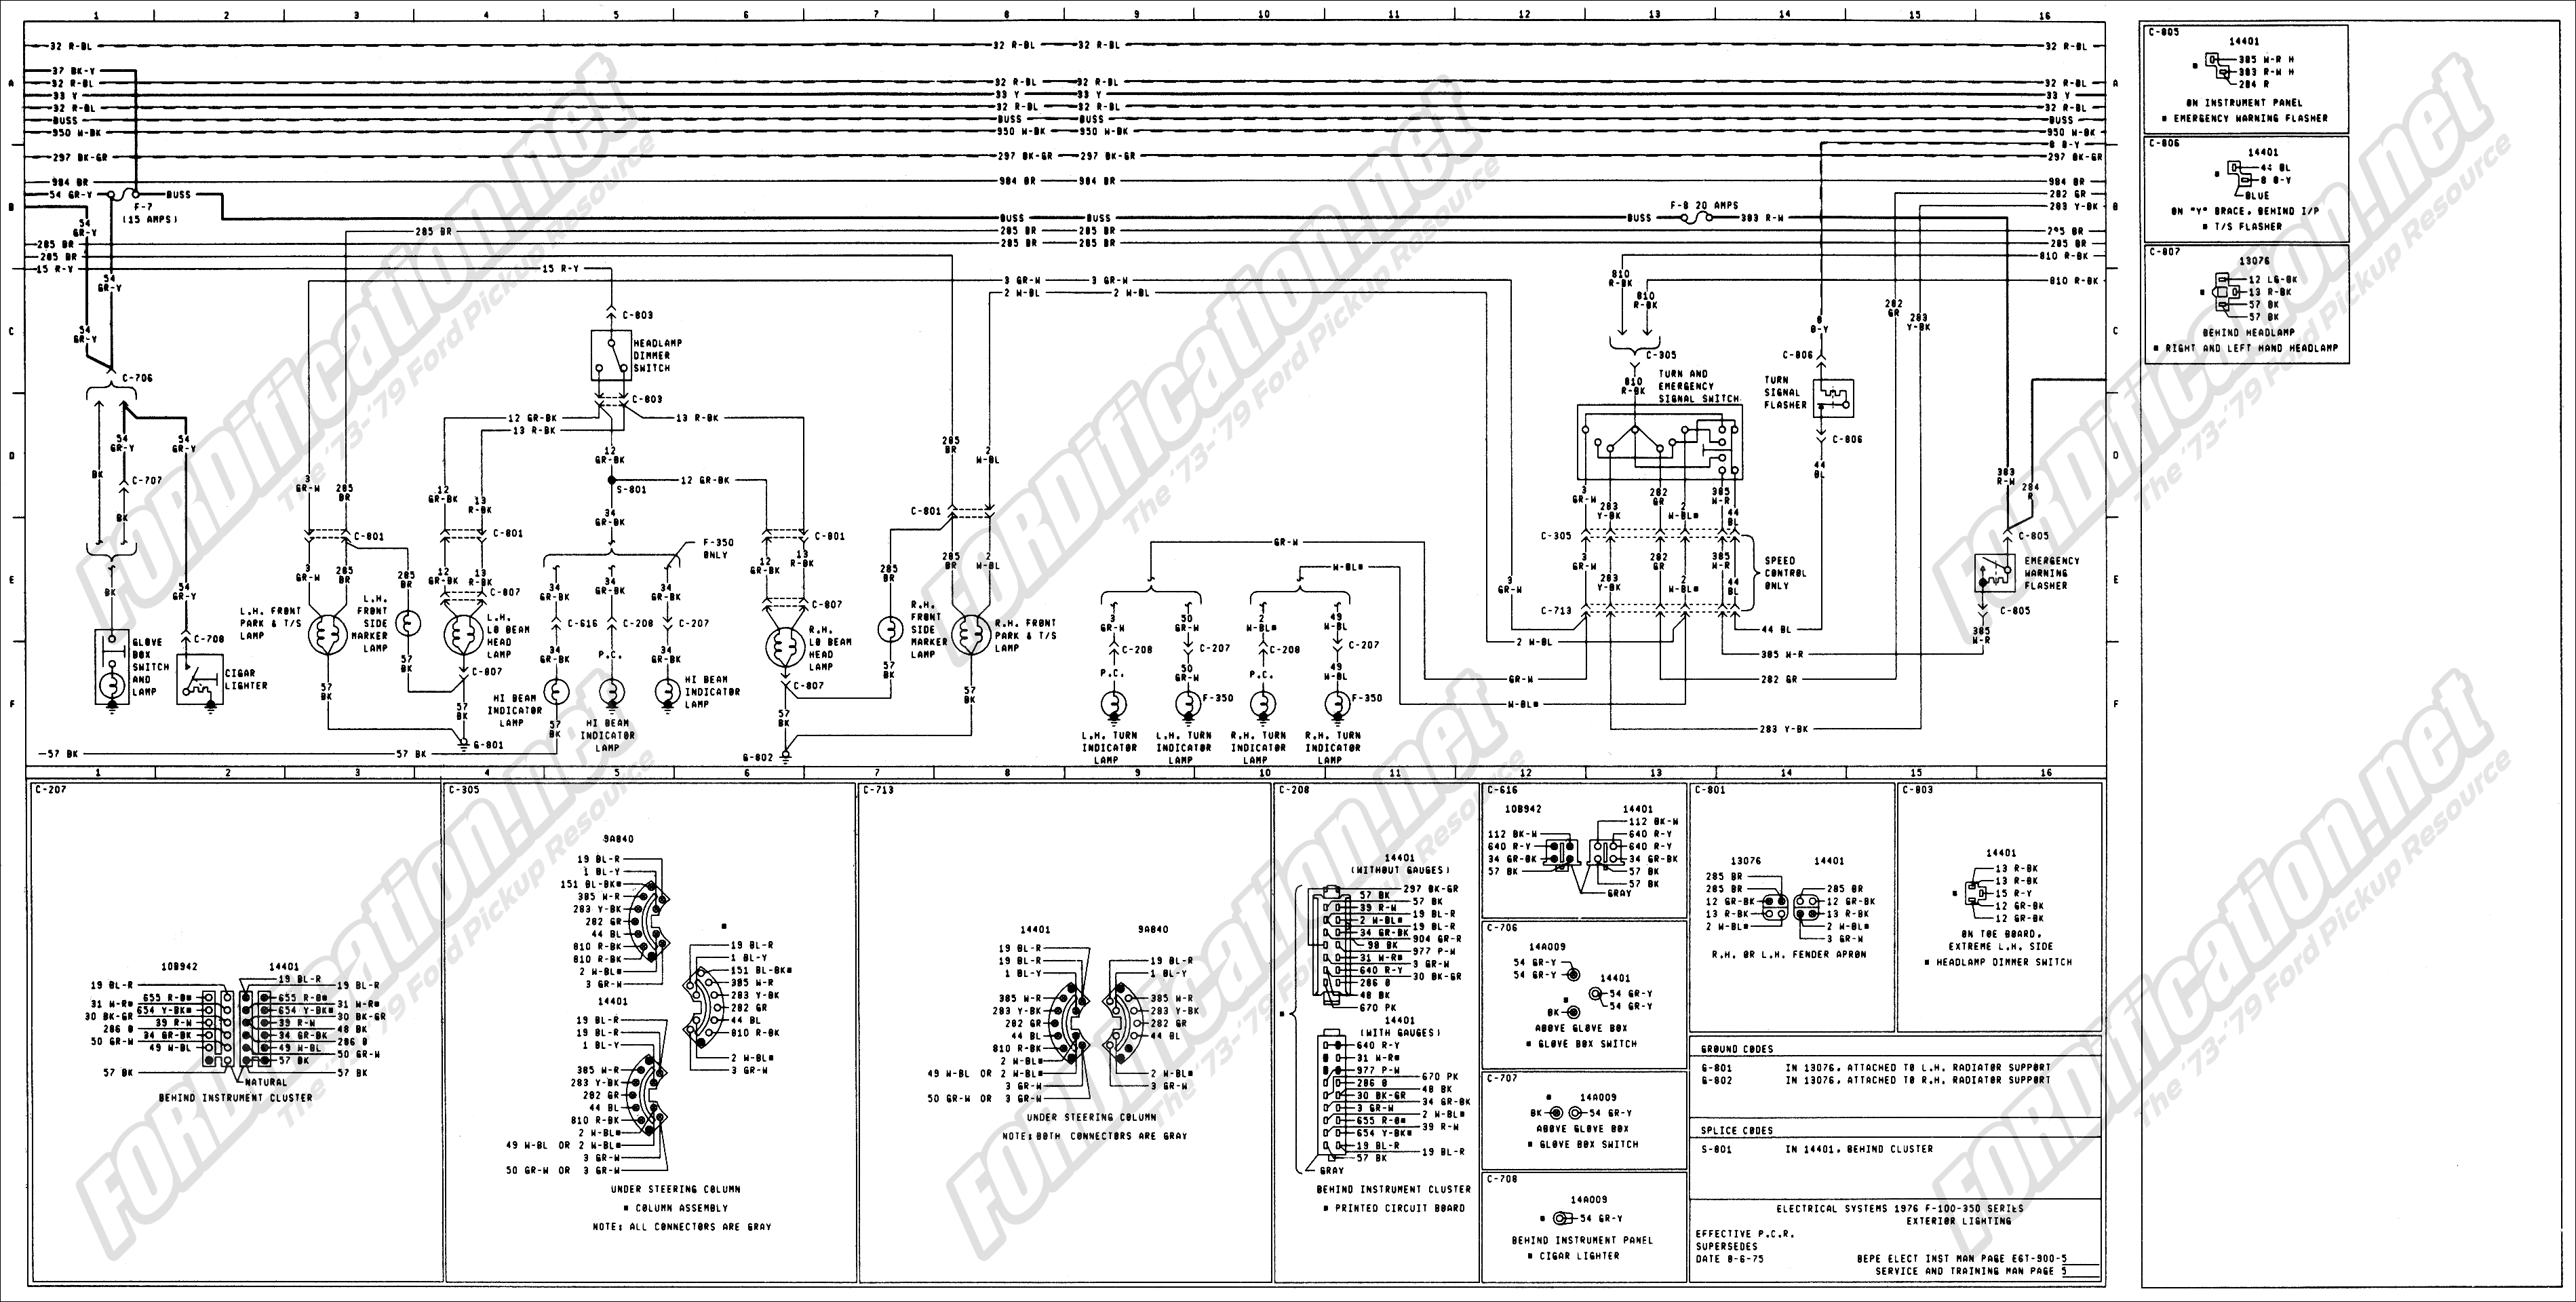 wiring_76master_5of9 1973 1979 ford truck wiring diagrams & schematics fordification net ford f250 trailer wiring diagram at mifinder.co